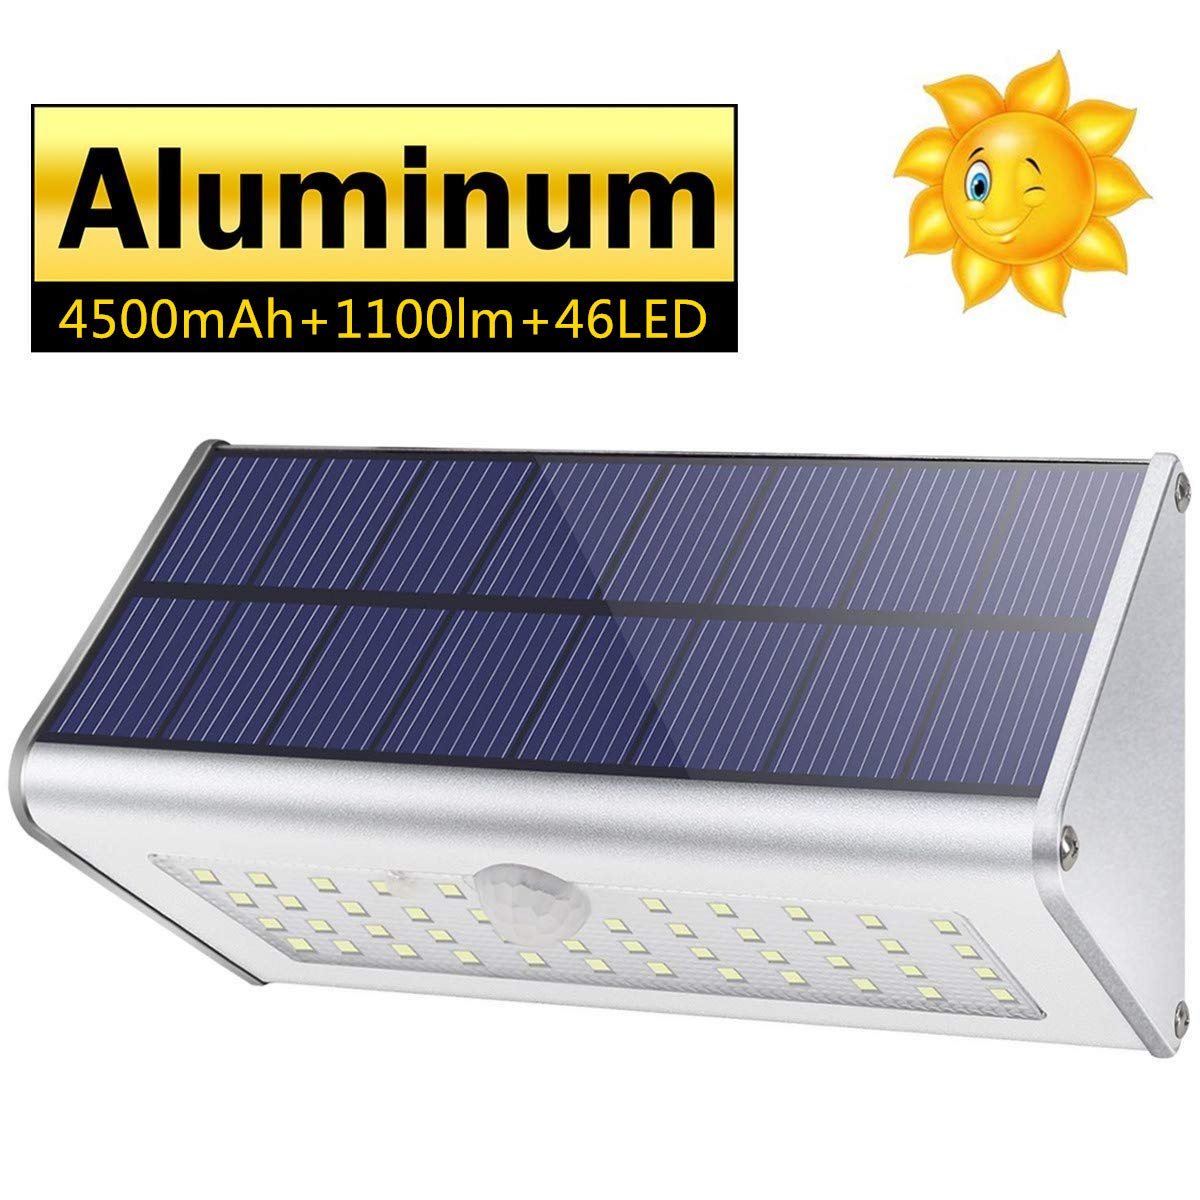 CAIYUE Solar Outdoor Lights 4500mAh Aluminum Alloy 1100lm Super Bright 120 Infrared Motion Sensor, Waterproof IP65 Security Lights, 4 Mode, for Garage, Stairway, Gate, Fence – White Light